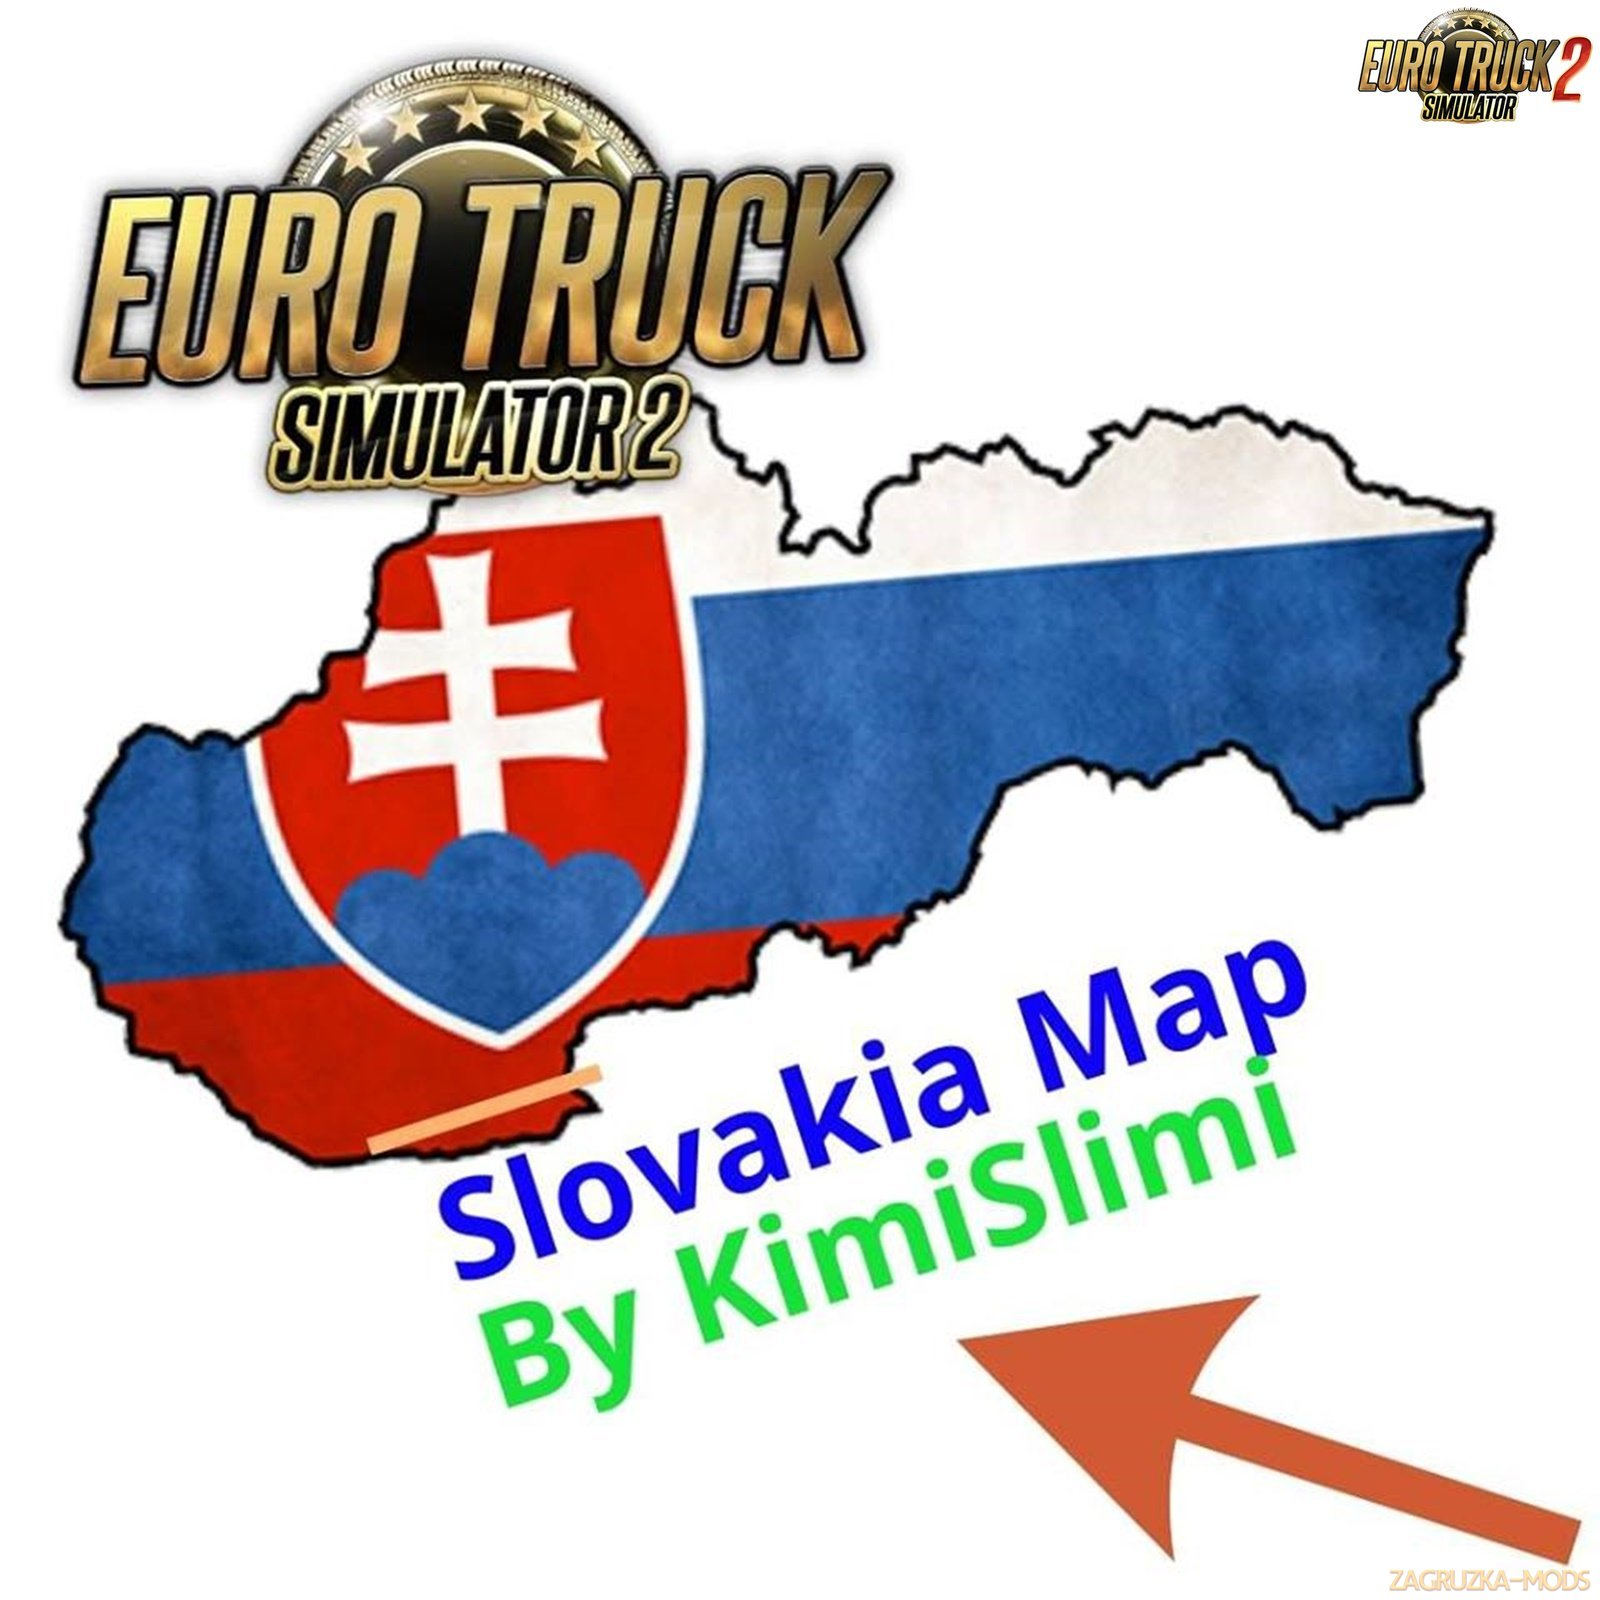 New Slovakia Map v9.0 by KimiSlimi (1.32.x)